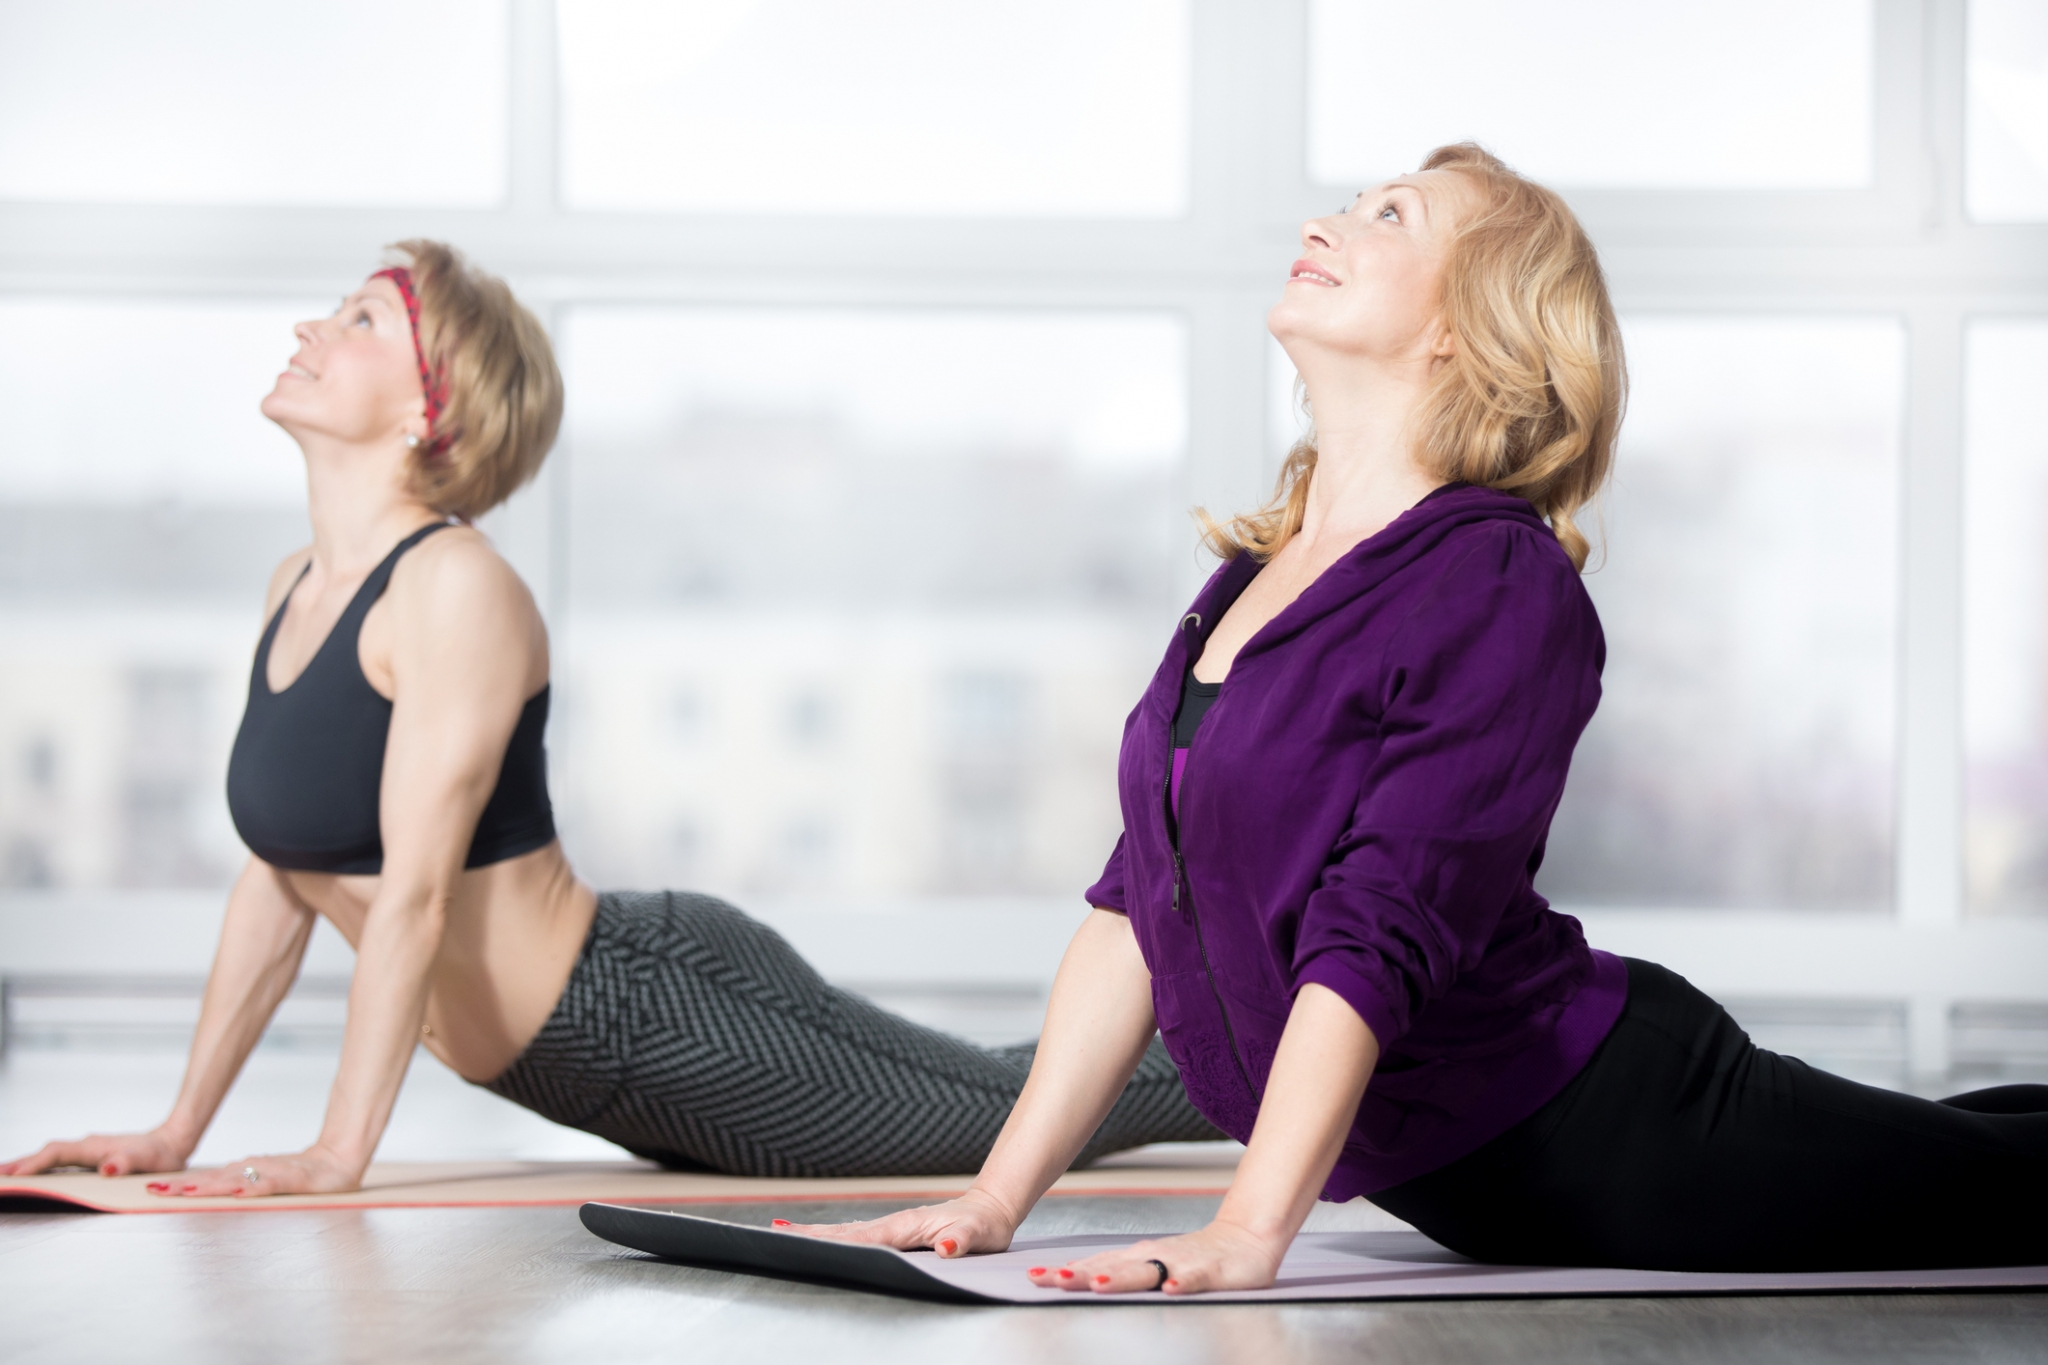 Yoga Poses for Your Morning Practice